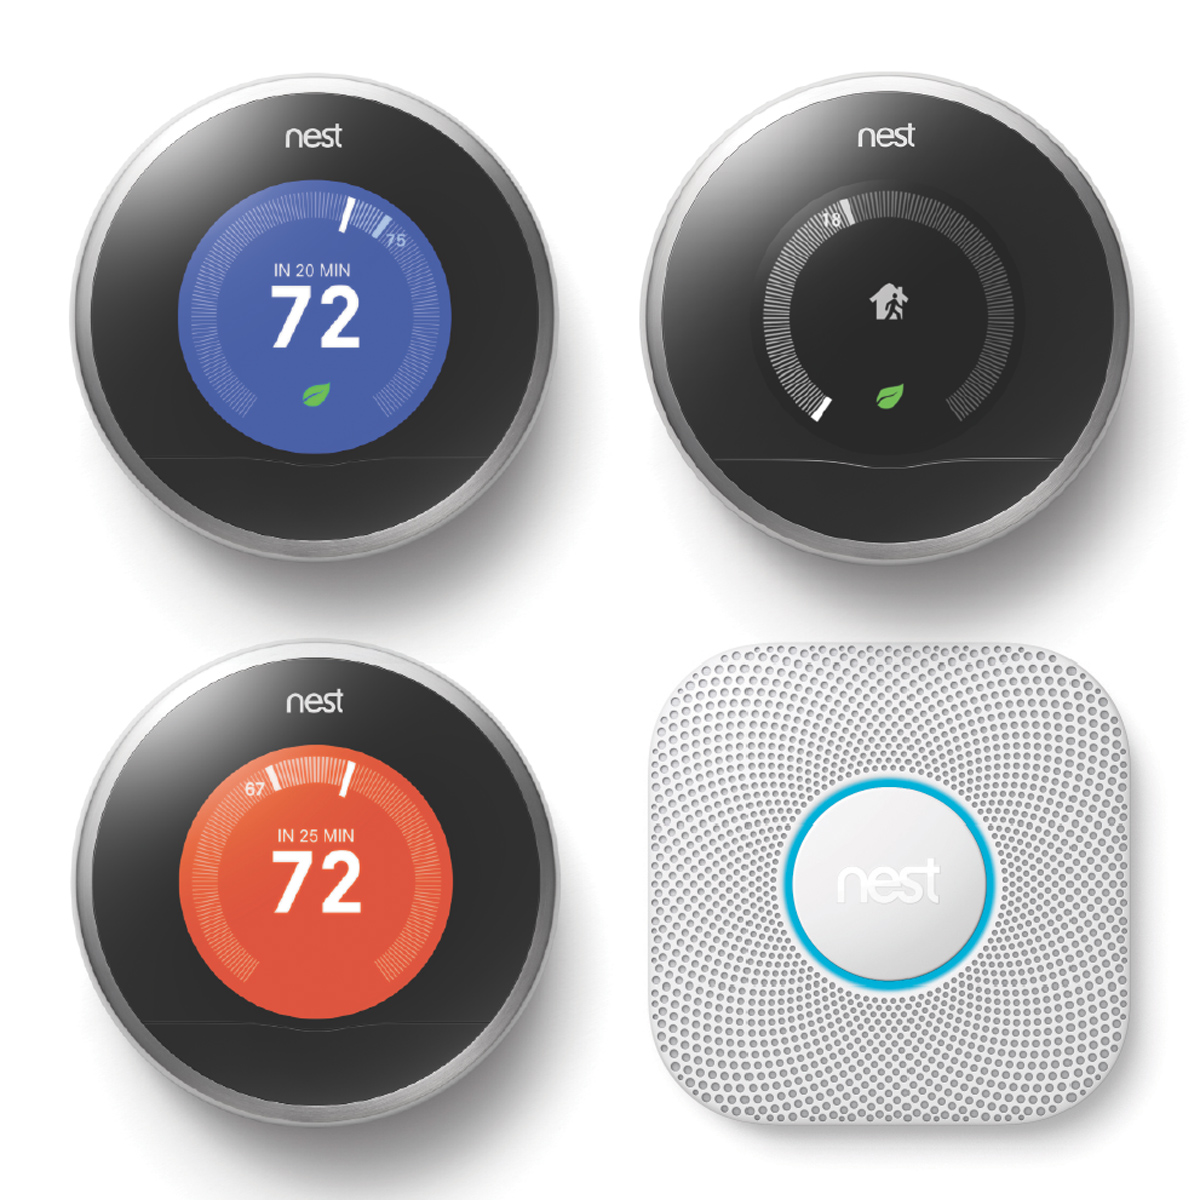 Nest third generation thermostats and the new Nest Protect smoke and carbon monoxide alarm (in white). Both the systems work in conjunction with the Nest app. More details at nest.com